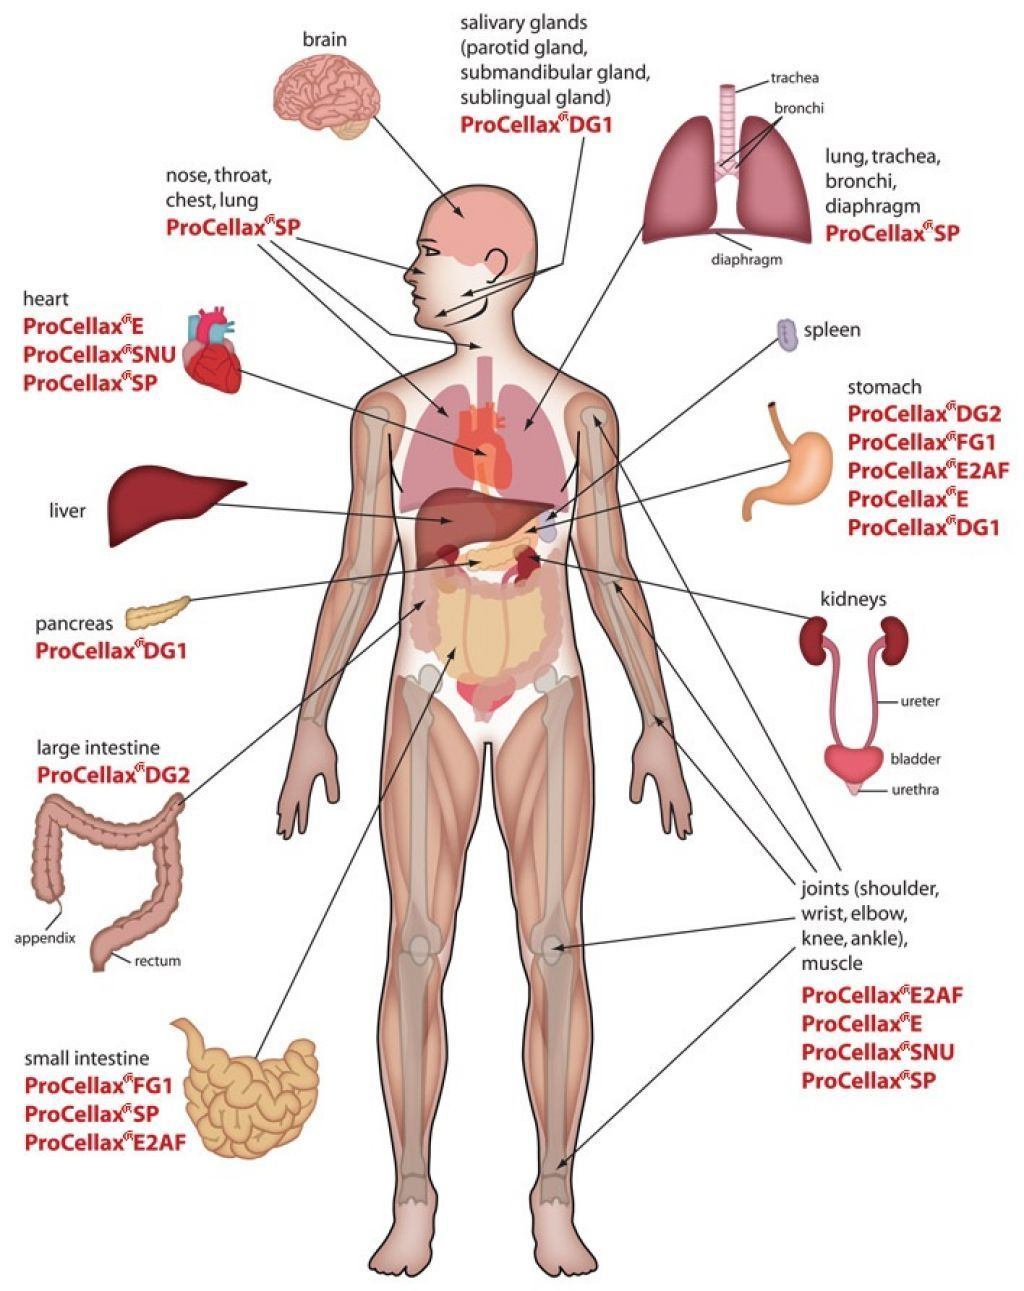 Picture Of An Appendix Of Human Body Koibana Info Human Body Organs Human Body Anatomy Body Anatomy Organs